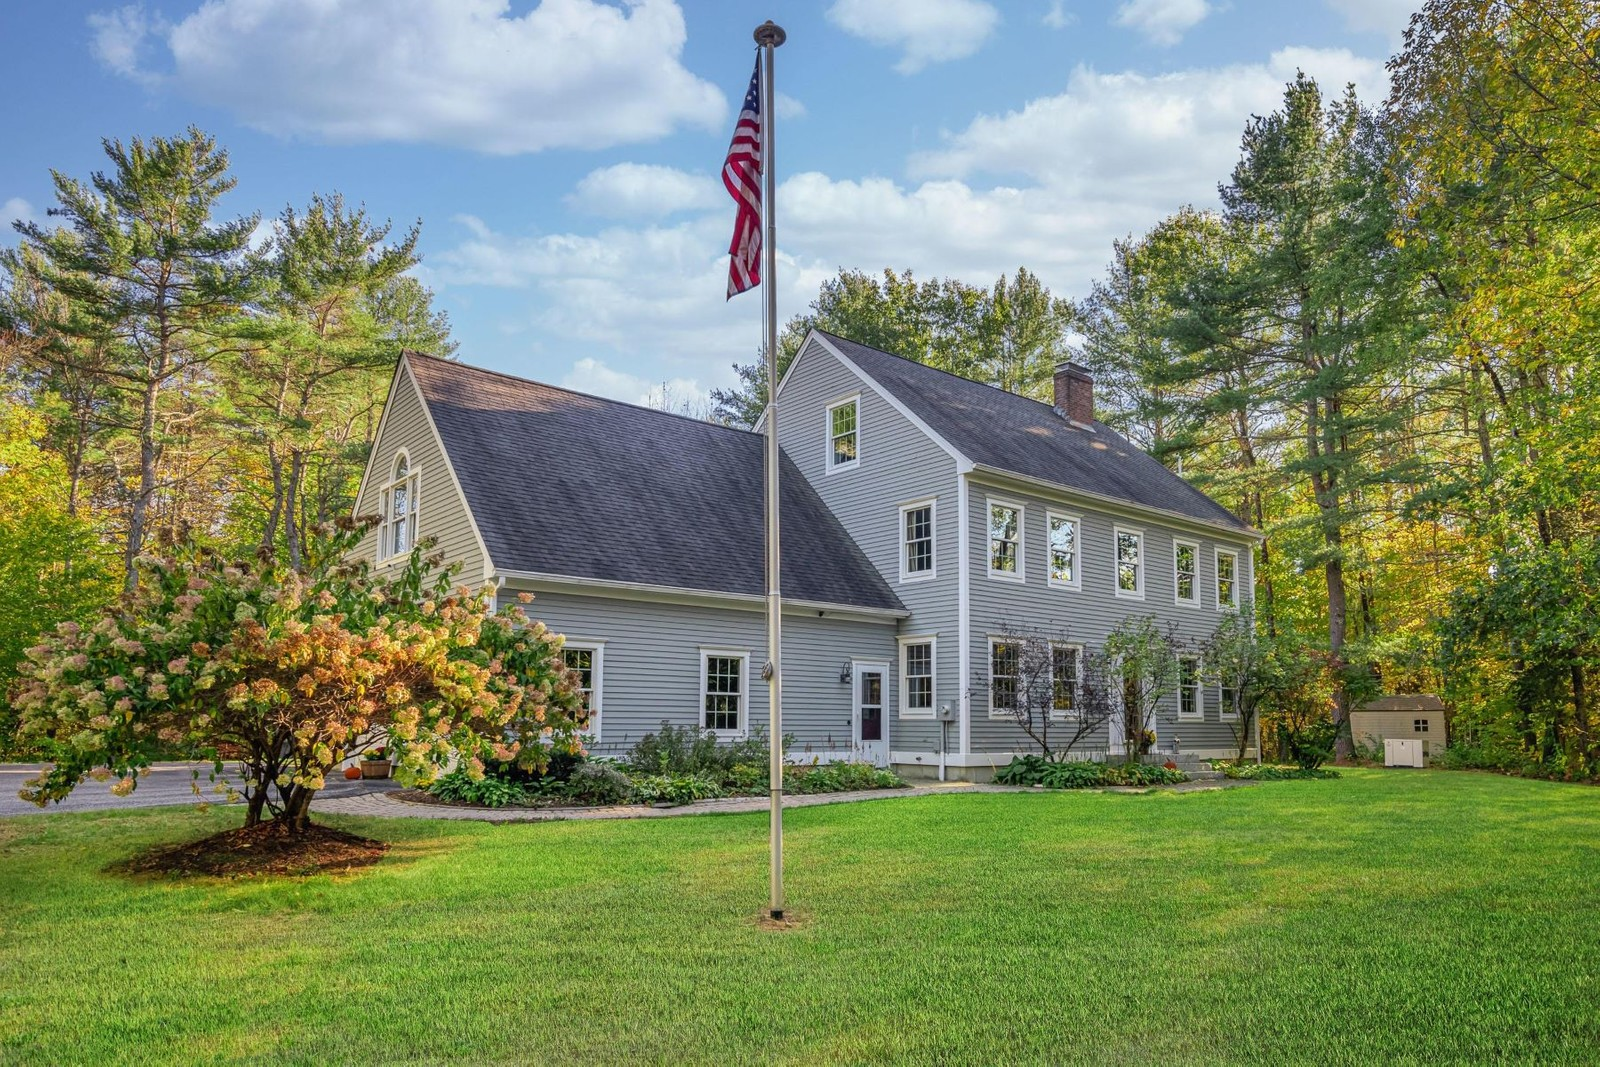 Single Family Homes for Sale at North Yarmouth, ME 04097